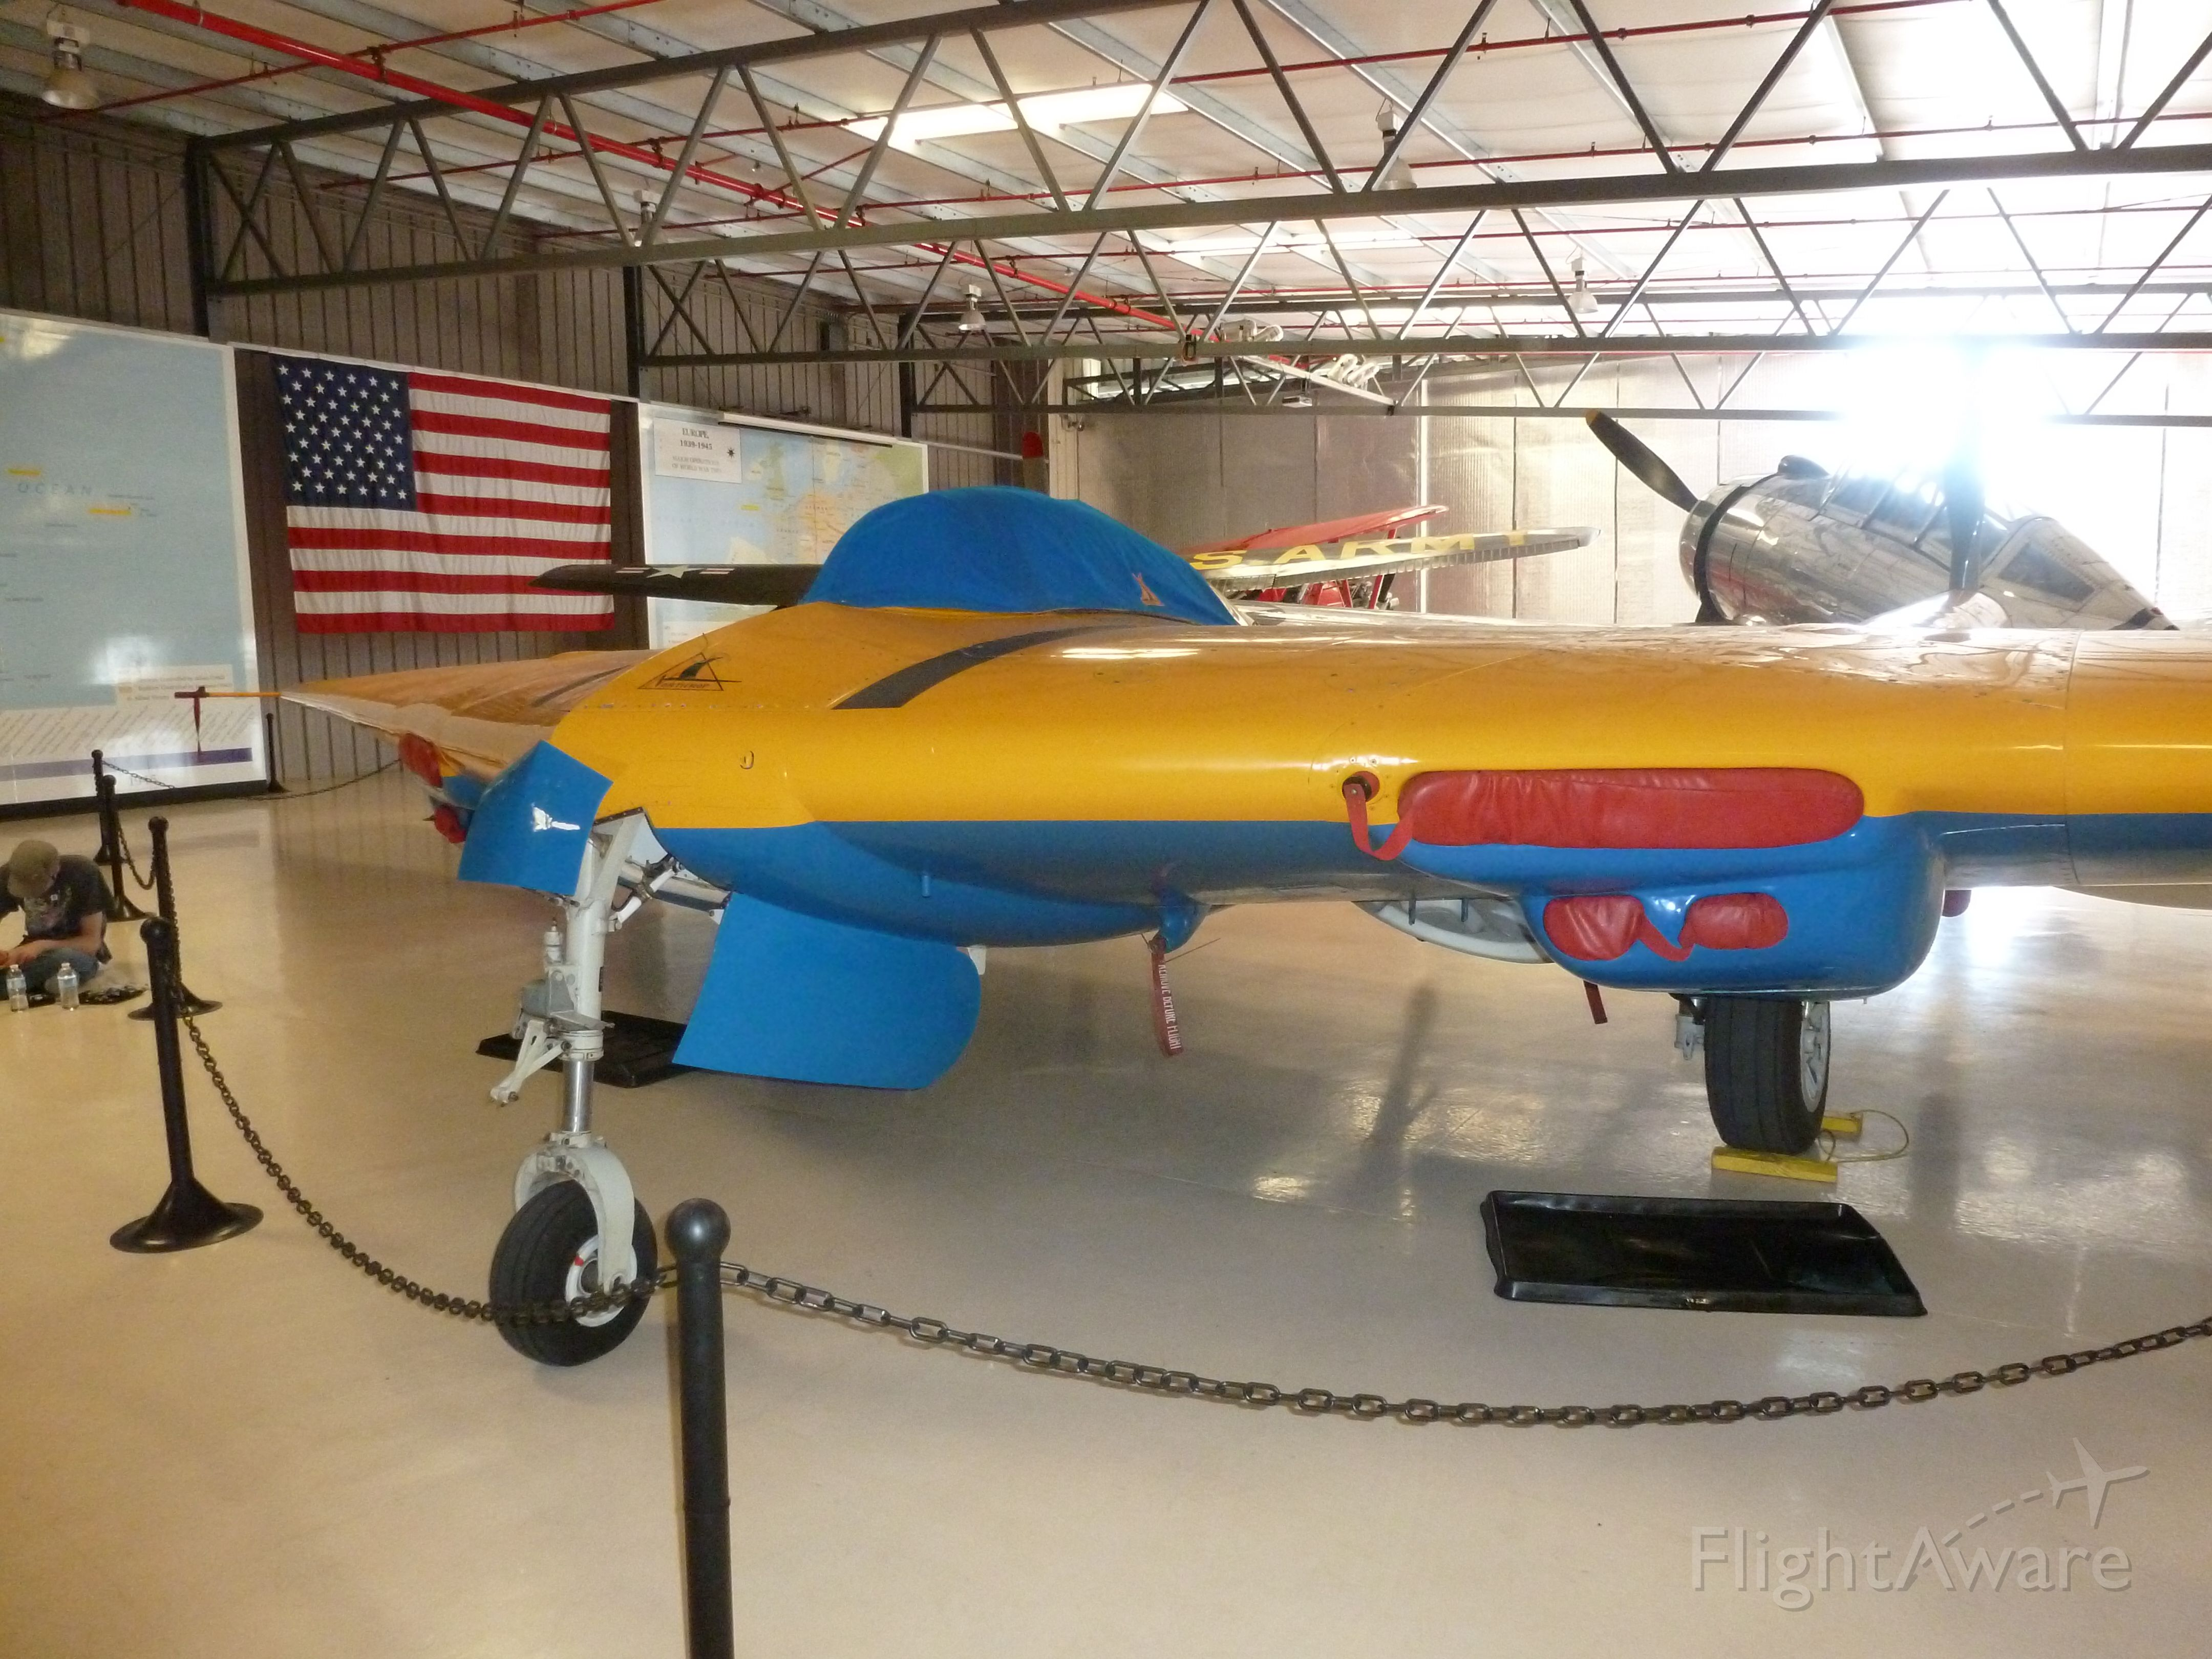 — — - Only flying wing prototype still airworthy.br /Planes of Fame, Chino, Cabr /br /Apr 23, 2019 - Northrop N9MB Flying Wing Destroyed in an engine-out Crash